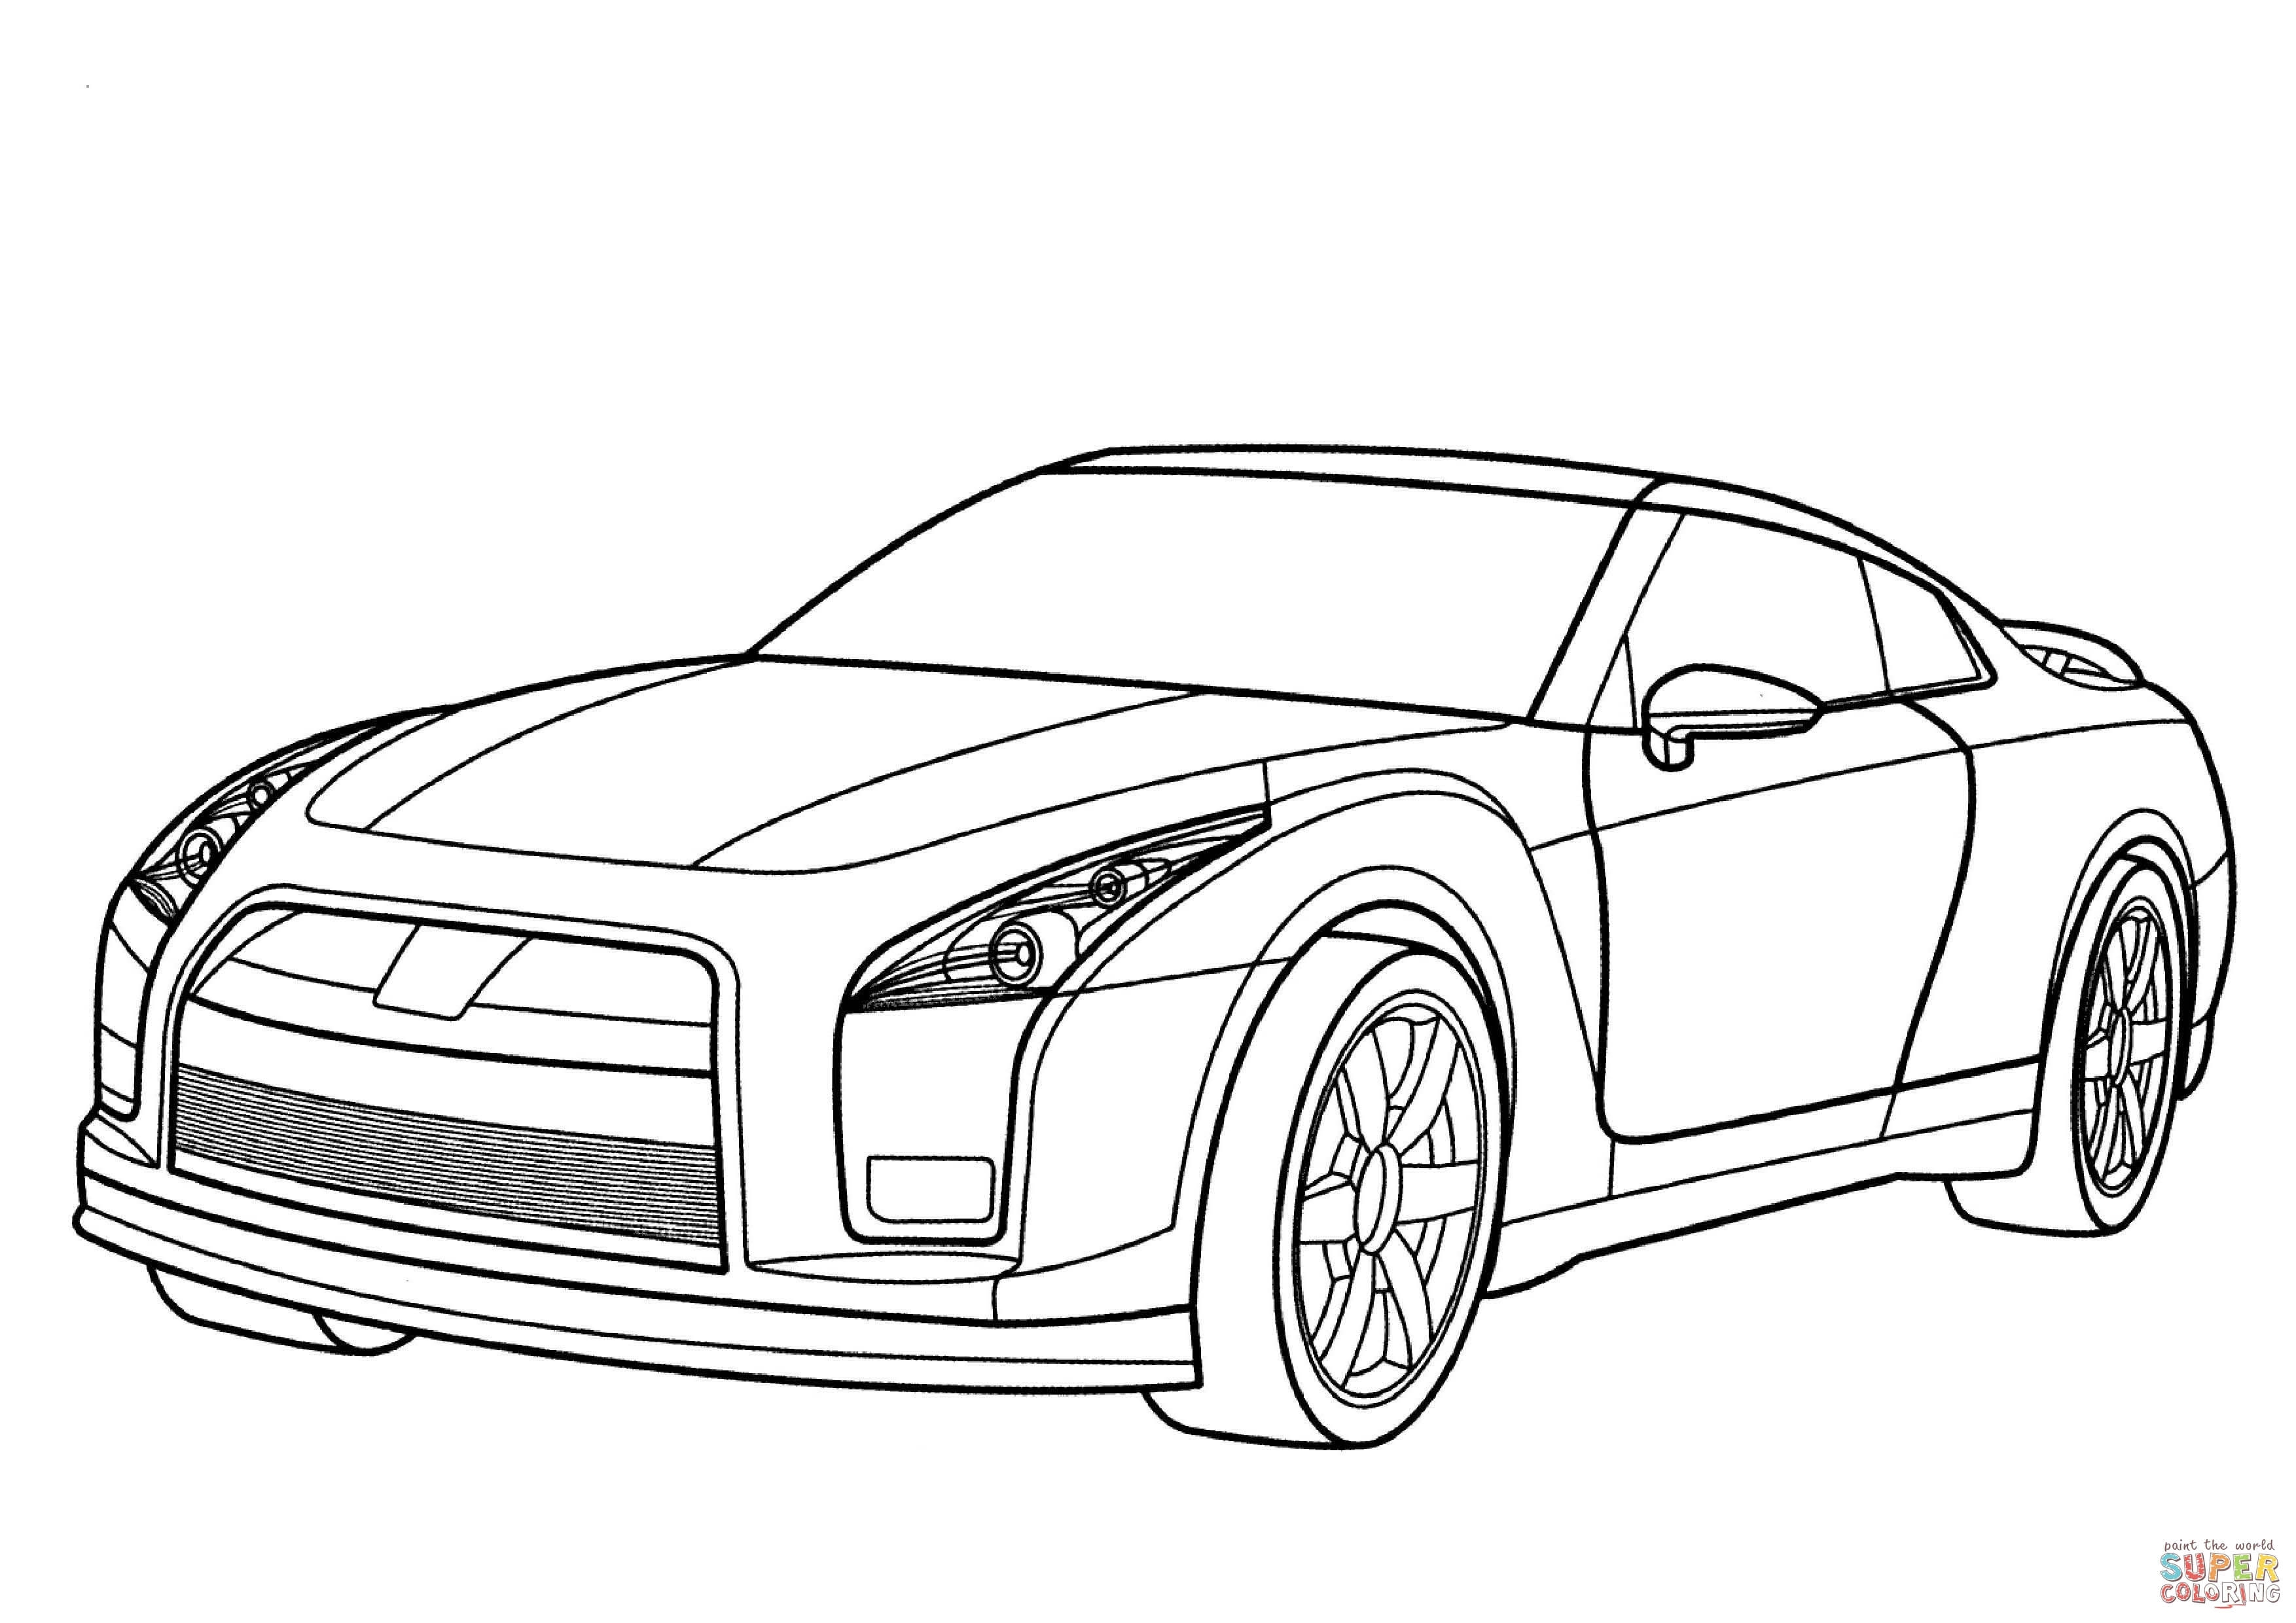 gtr coloring pages - skyline coloring pages printable sketch templates